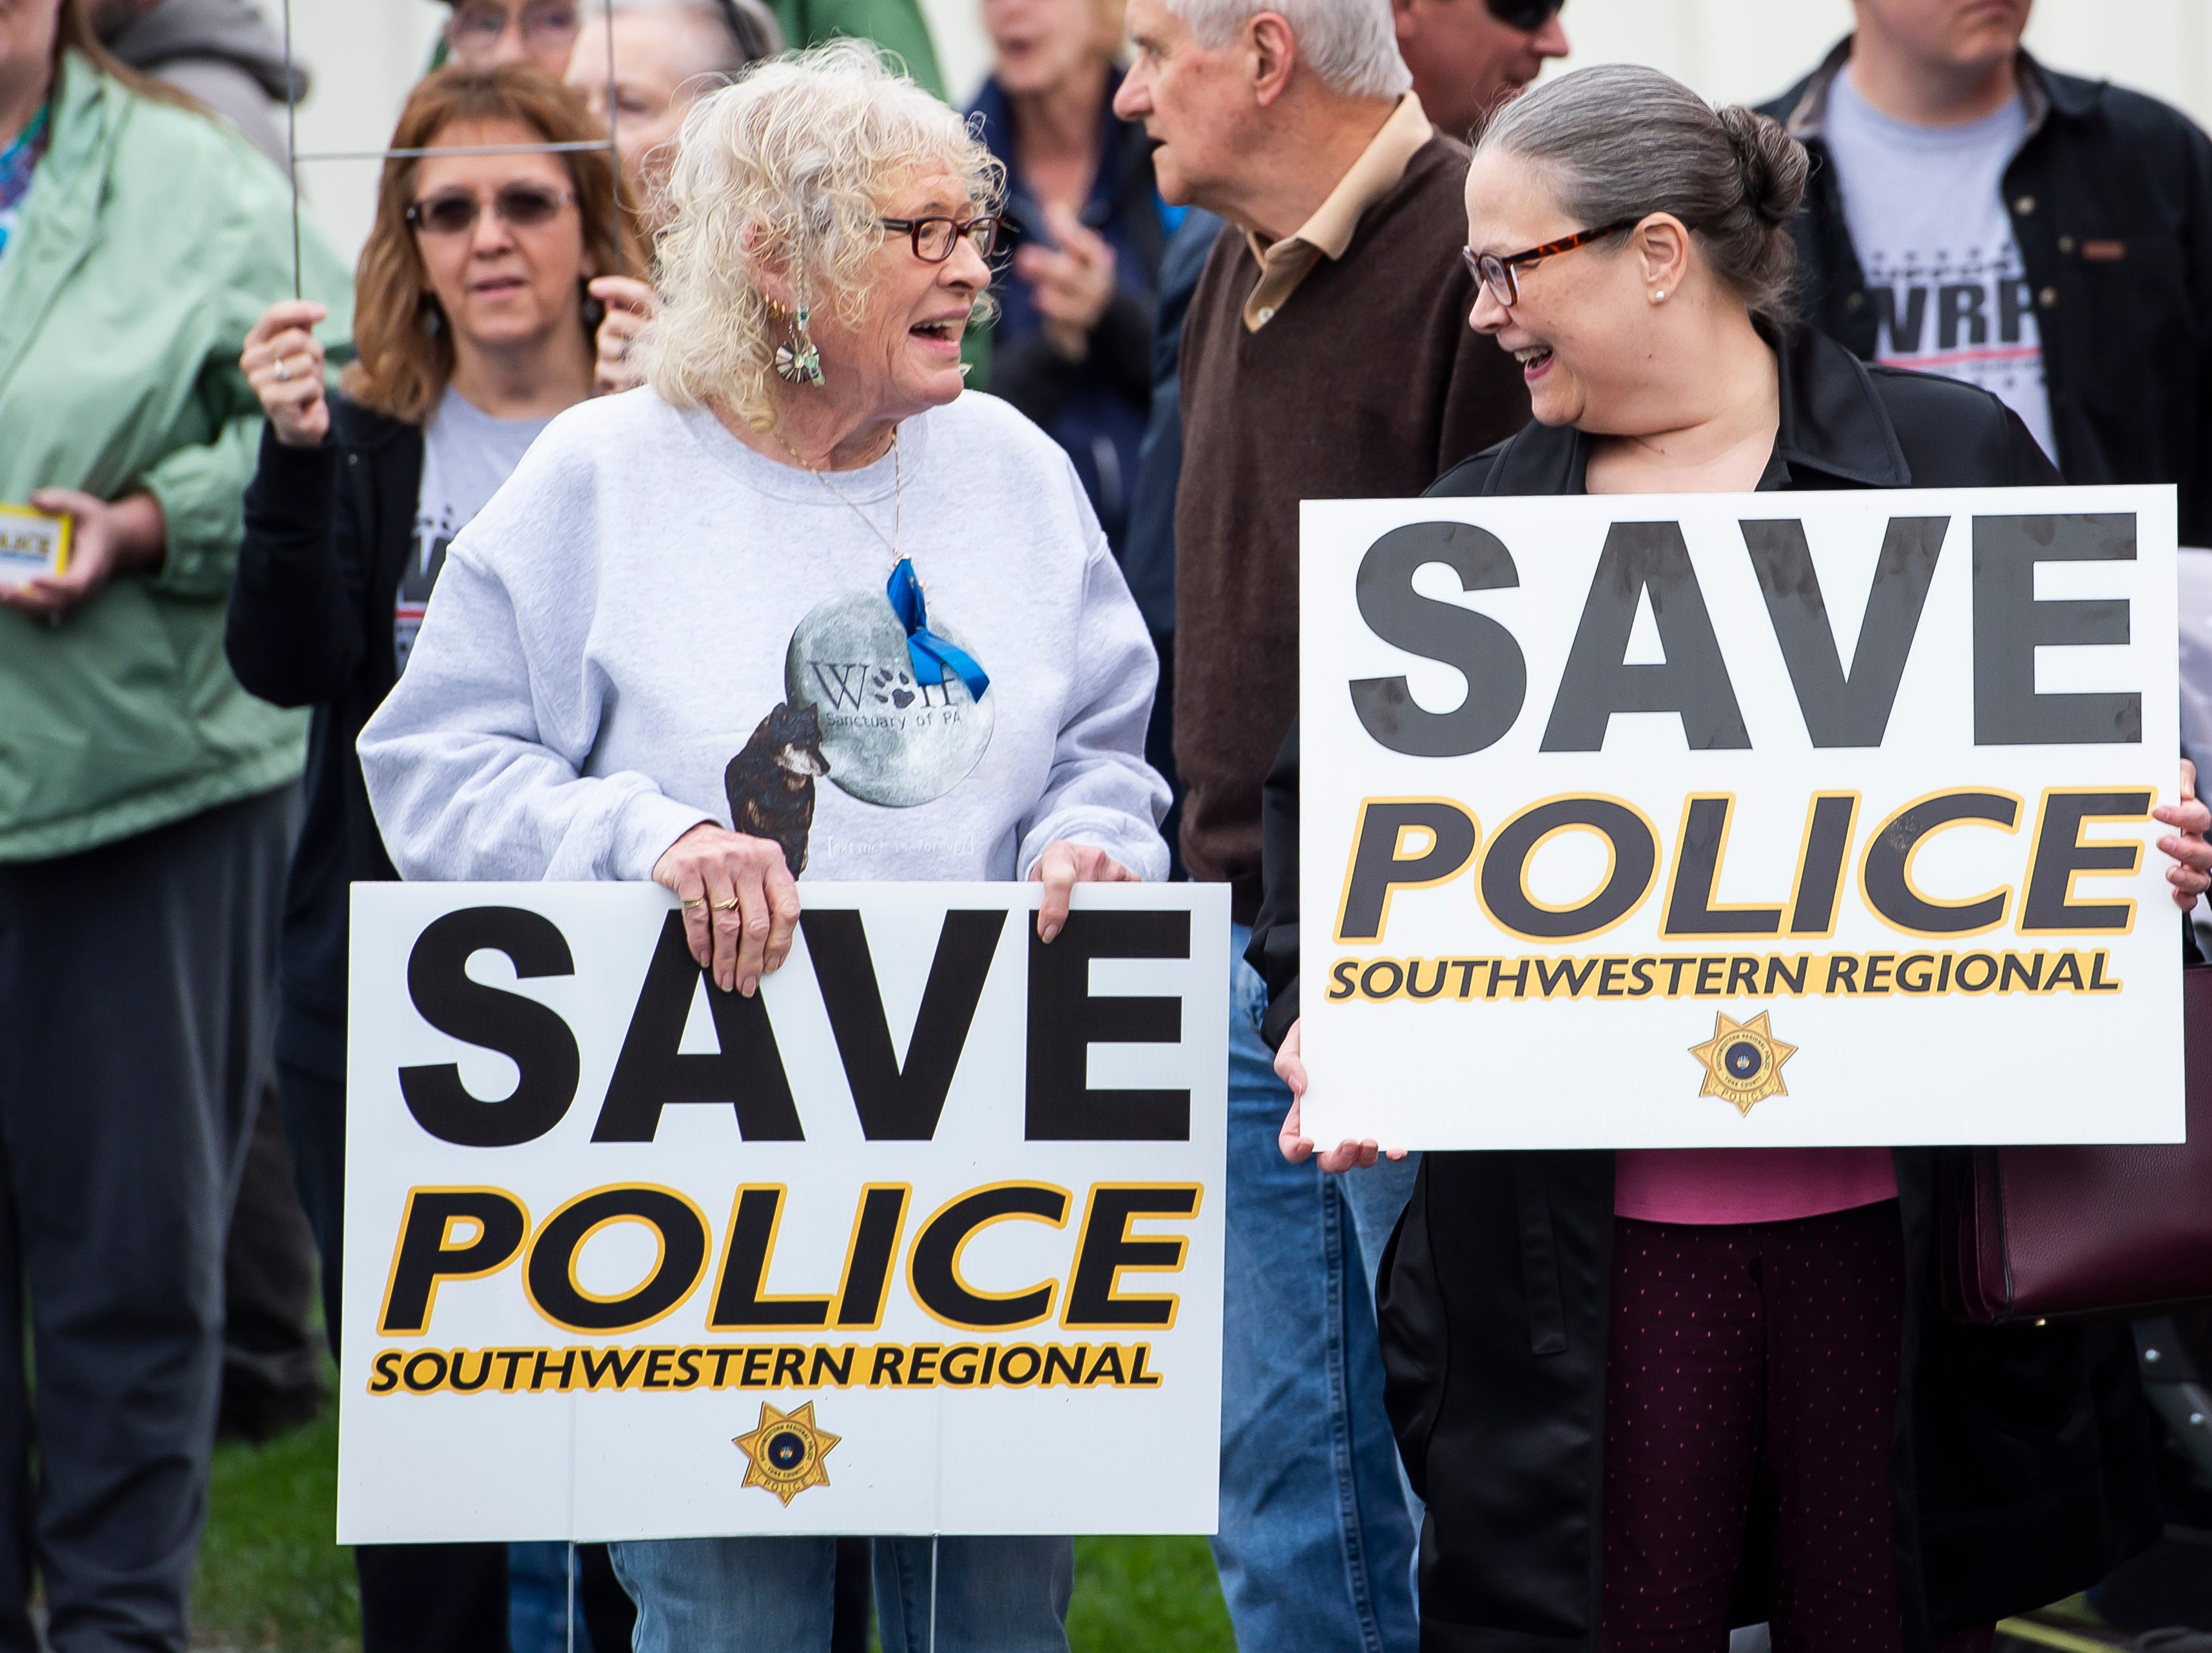 Becky Keagy, left, and Kathy Best hold signs in support of Southwestern Regional Police before the start of a meeting at the North Codorus Township building on Tuesday, April 16, 2019.